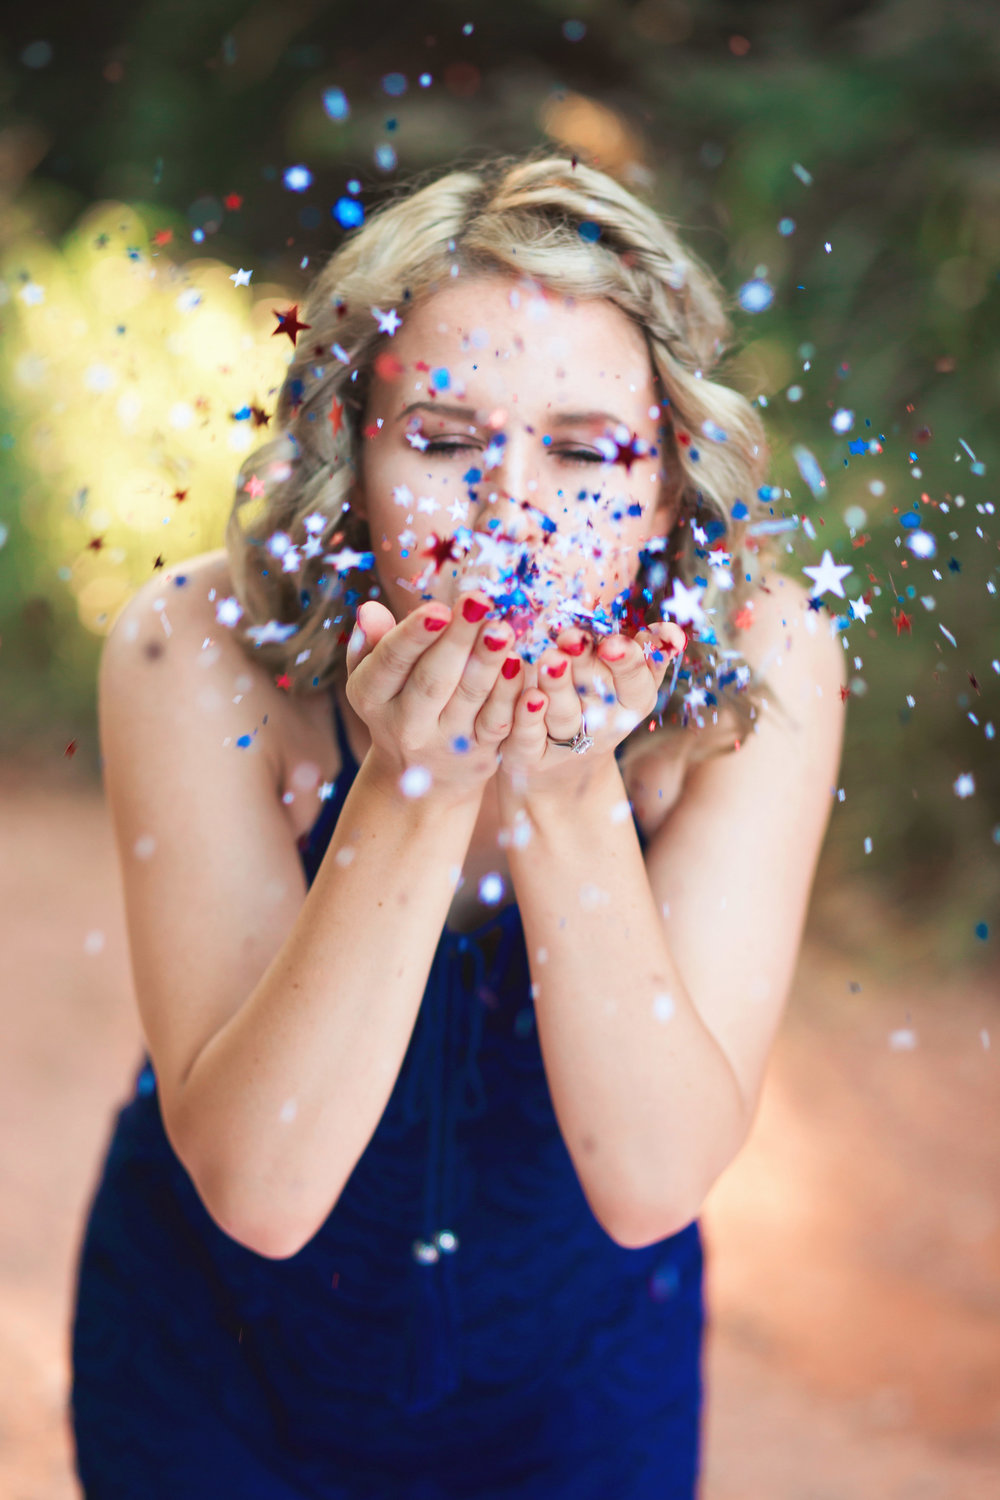 senior girl wearing blue dress blowing star shaped confetti out of her hands